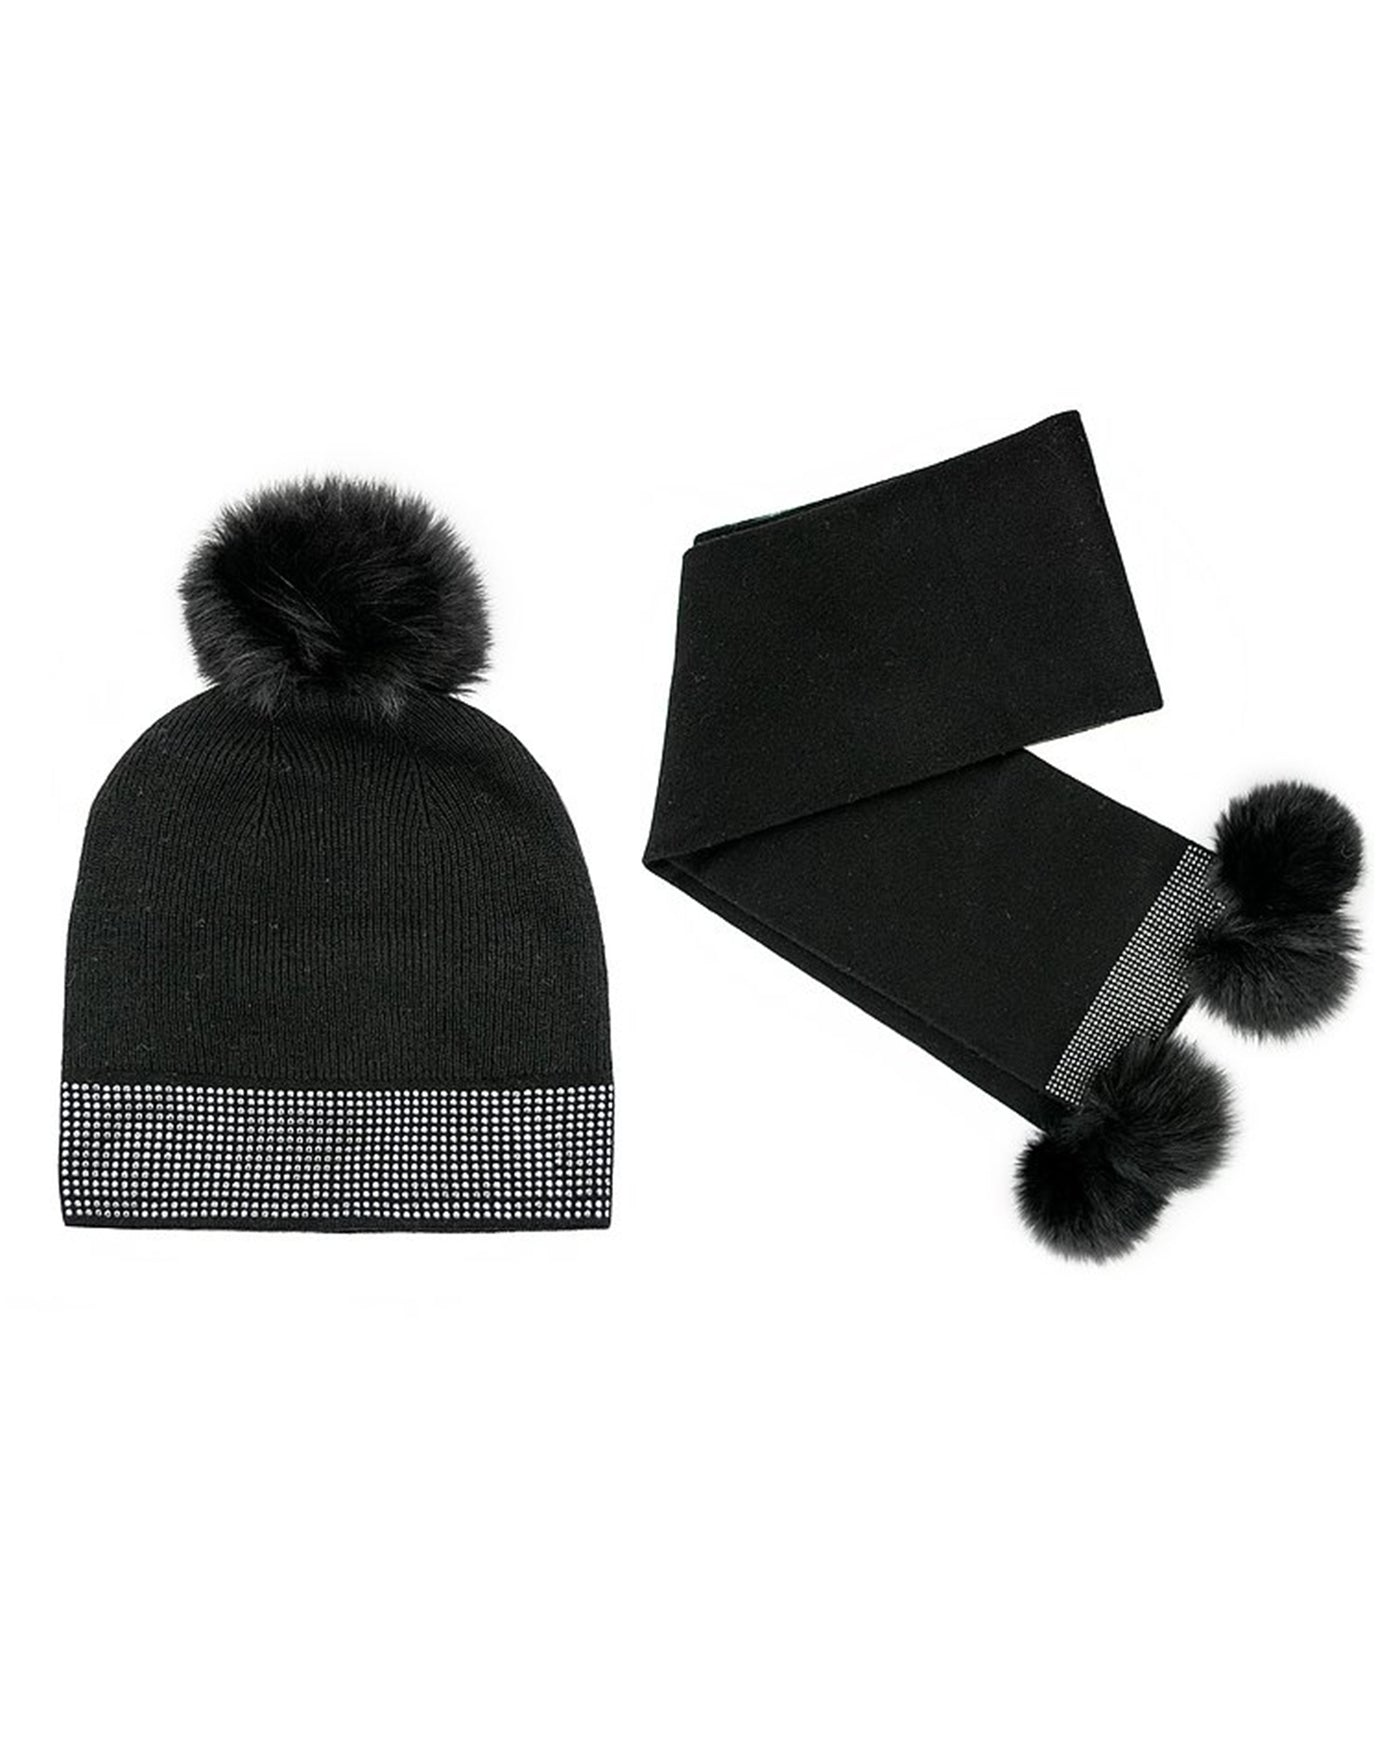 Knitted Black Wool Scarf And Hat Set With Fox Fur Pom Pom And Studs